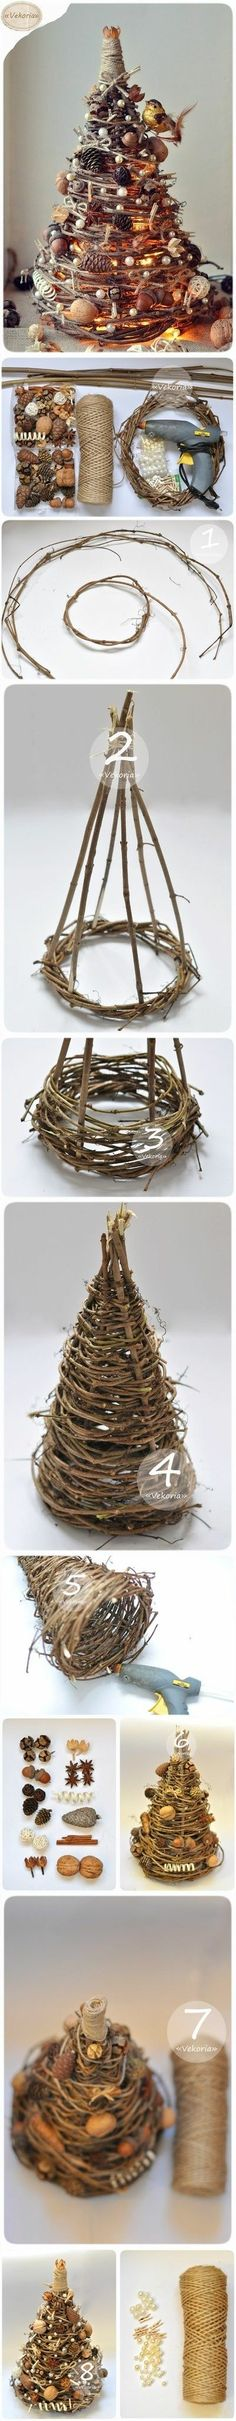 20 Beautiful Rustic Ideas for Christmas Decorations: DIY Rustic Christmas Tree Noel Christmas, Country Christmas, Winter Christmas, All Things Christmas, Christmas Ornaments, Primitive Christmas, Christmas Projects, Holiday Crafts, Navidad Diy